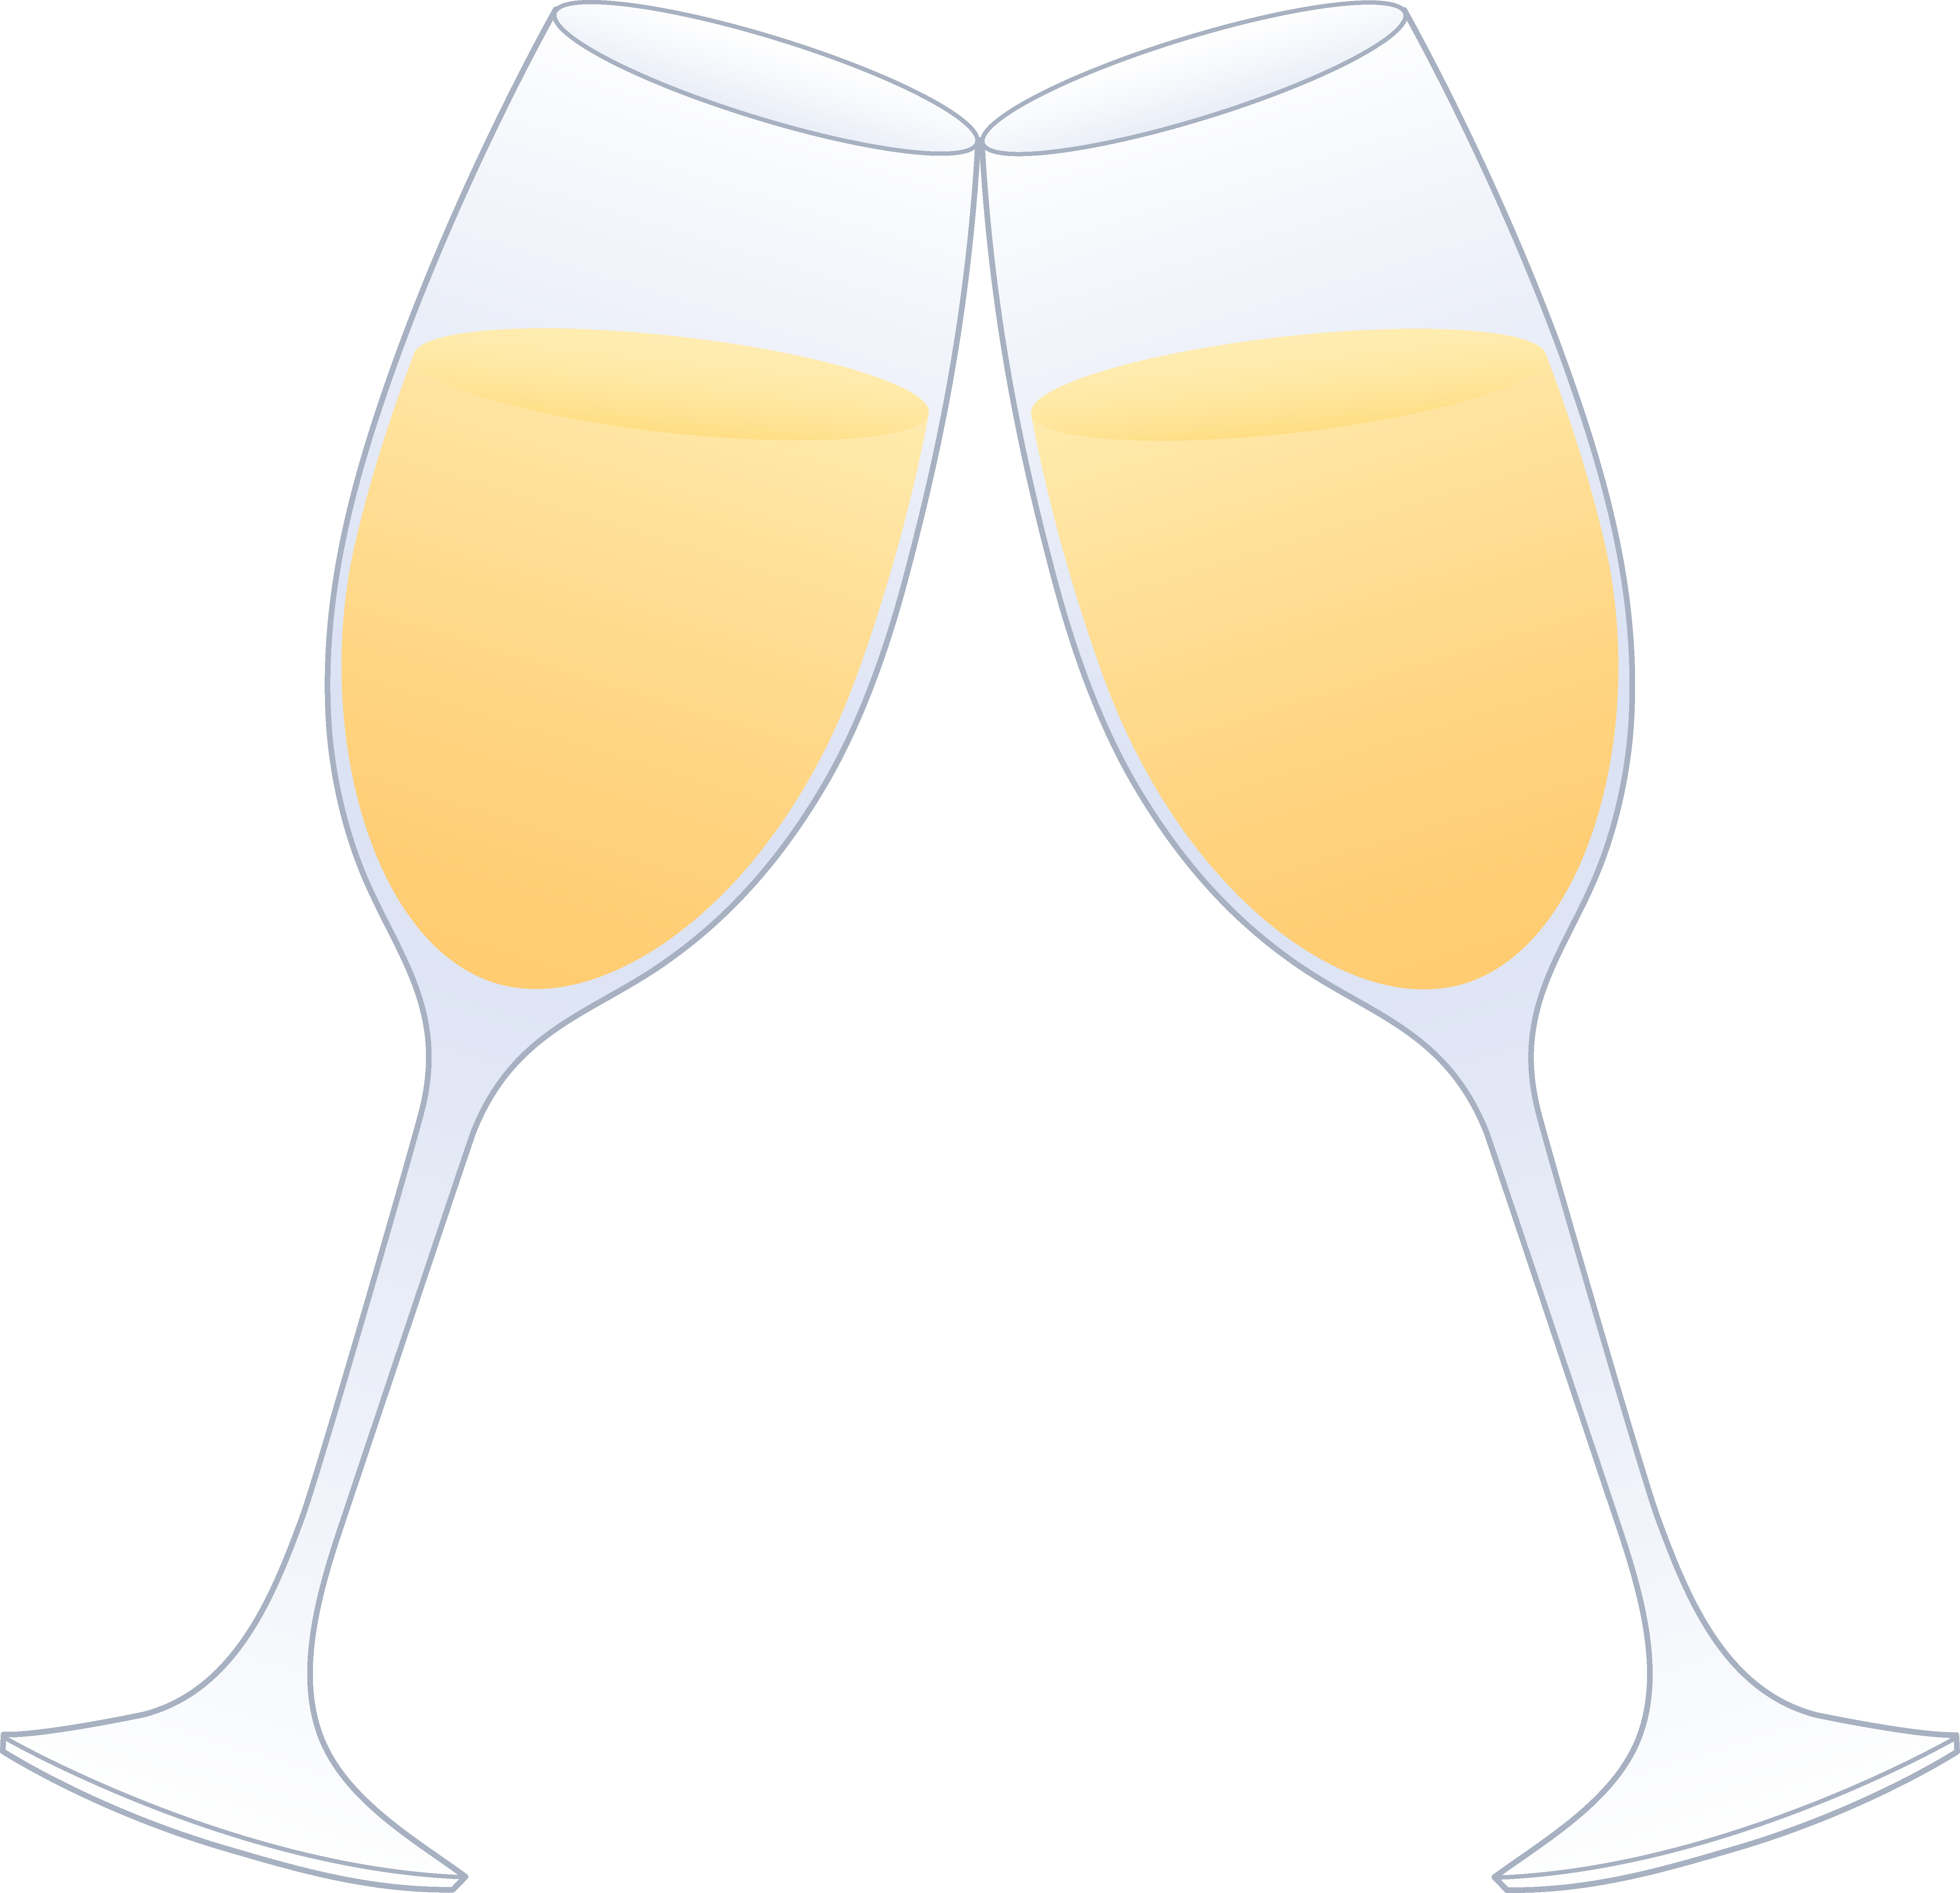 Party clipart champagne glass #11